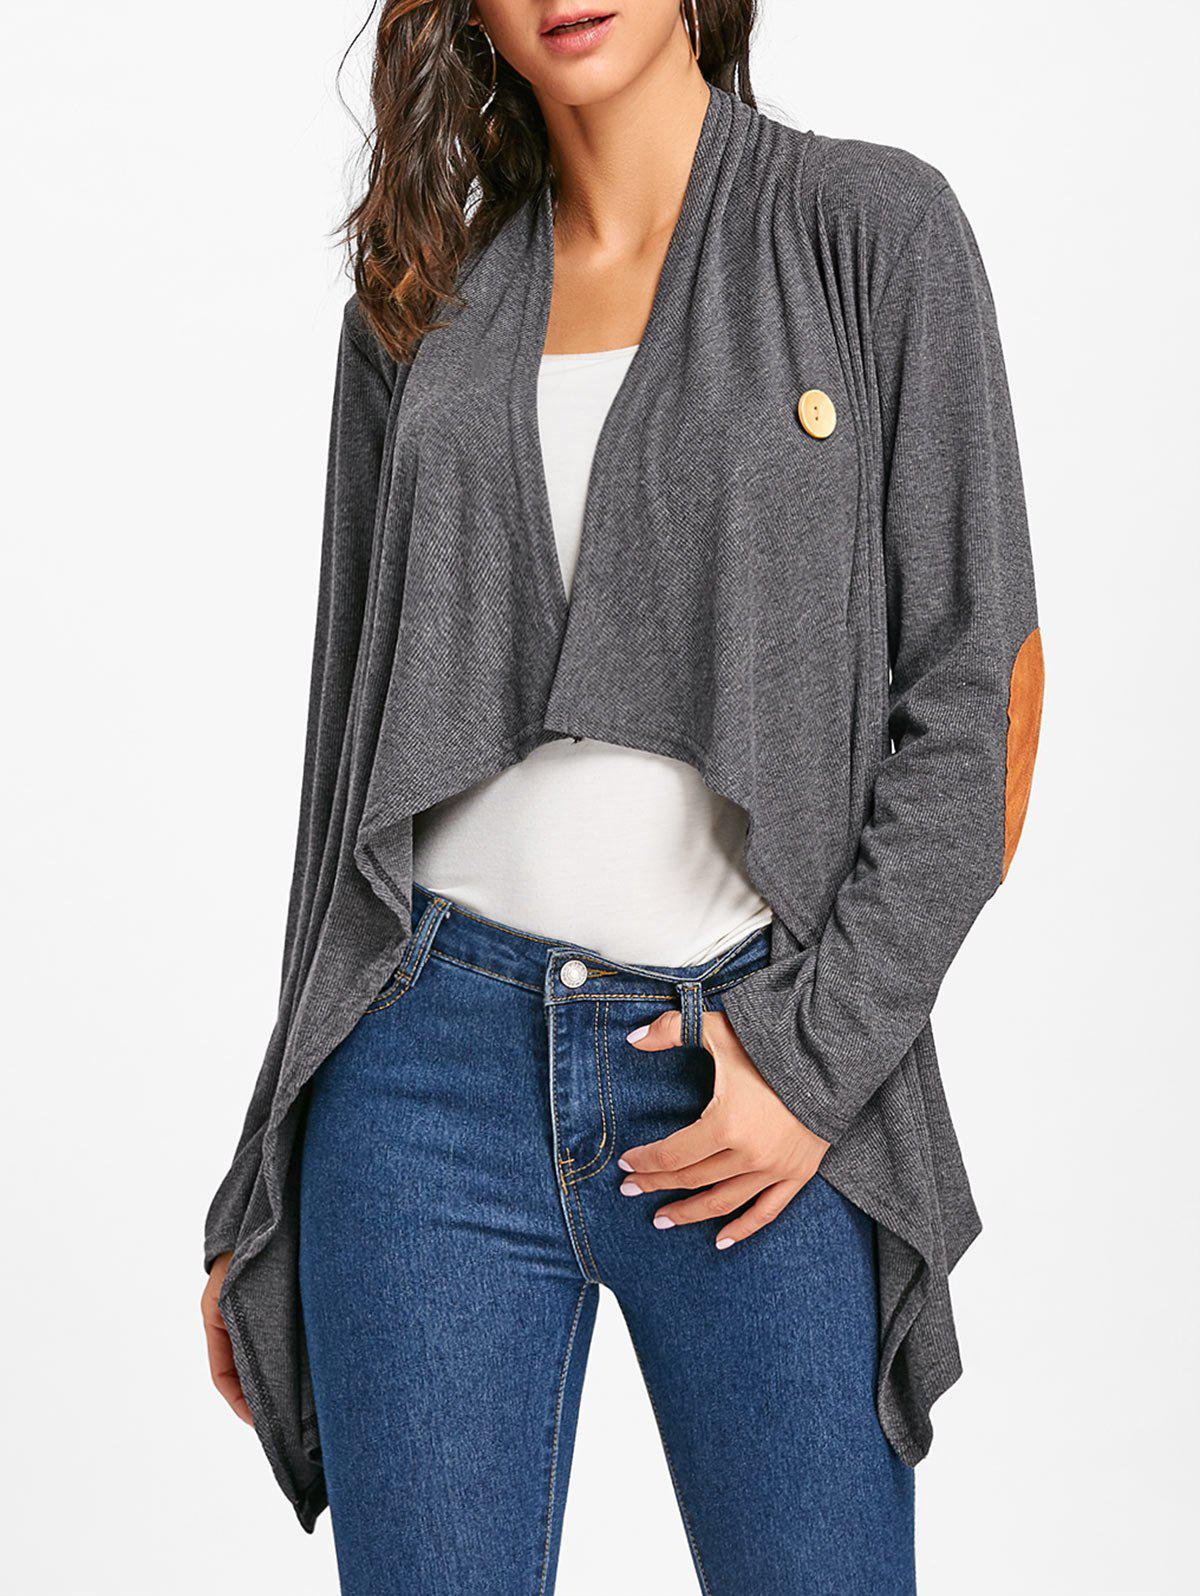 Asymmetric Elbow Patch Cardigan - GRAY L